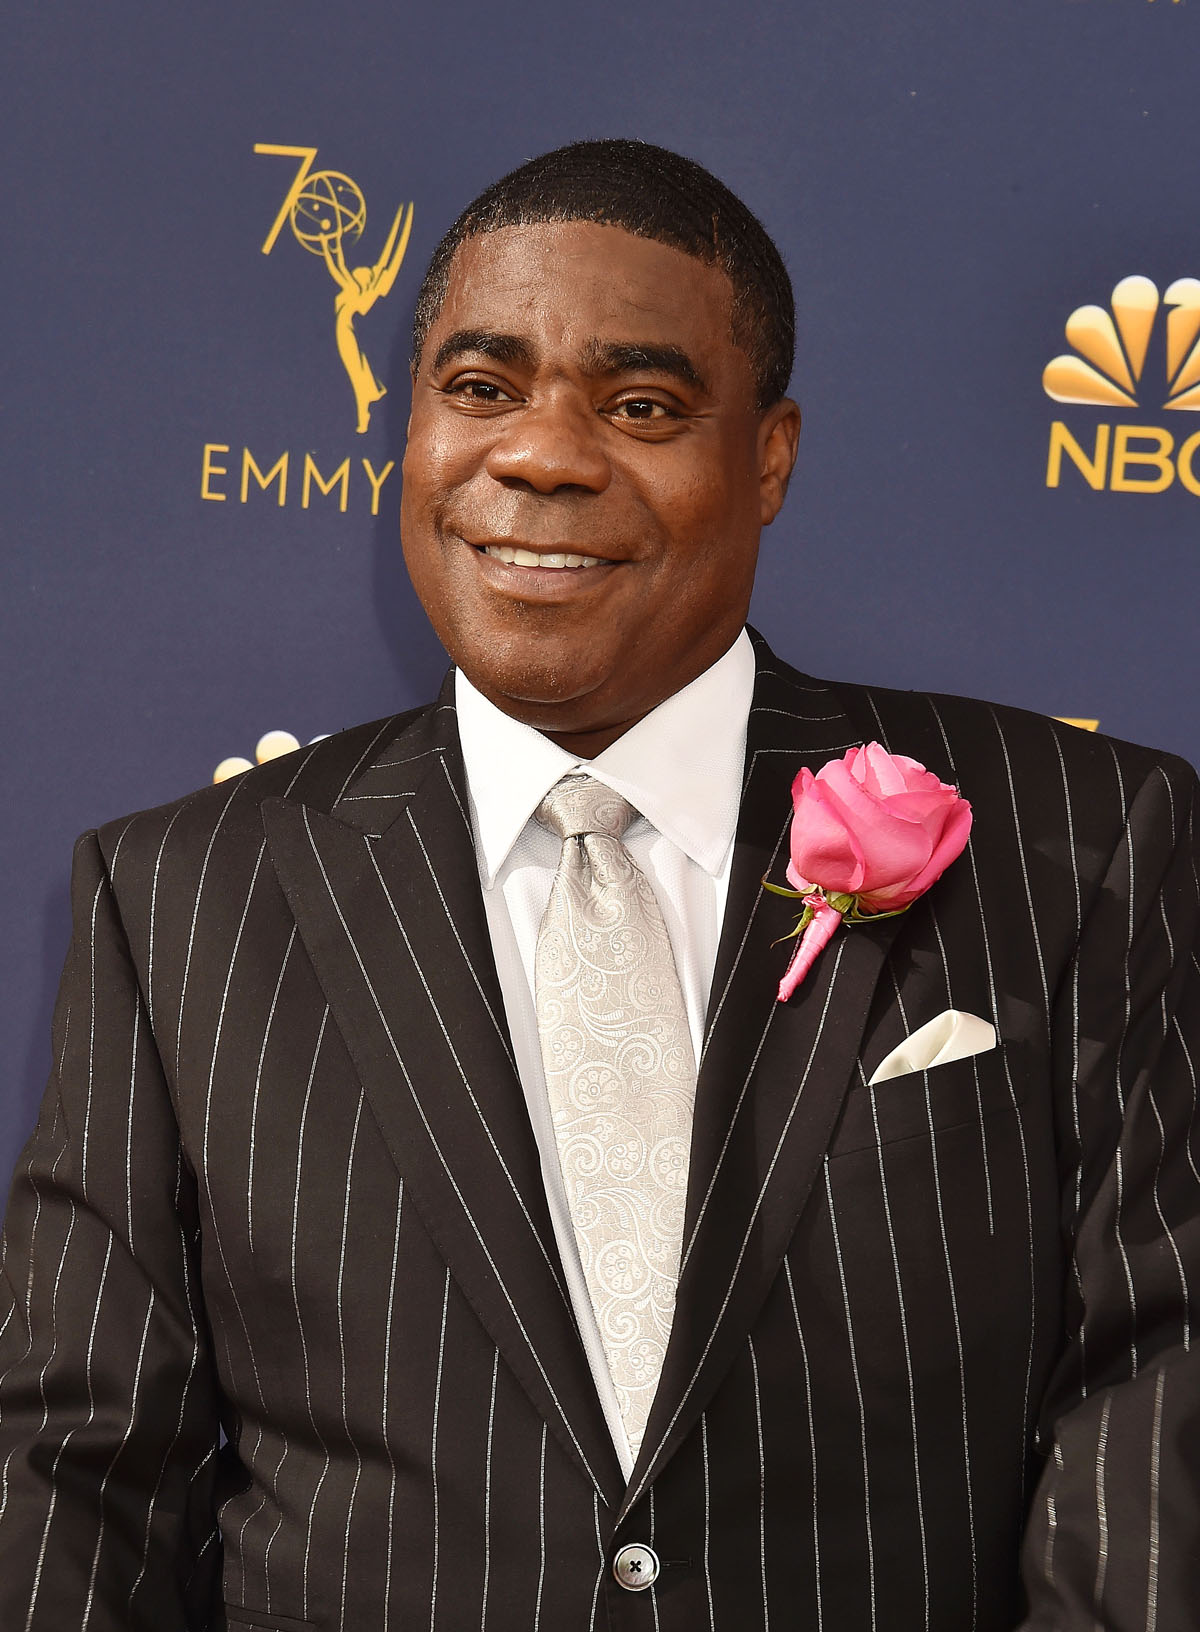 Tracy Morgan at the 70th Emmy Awards in Los Angeles